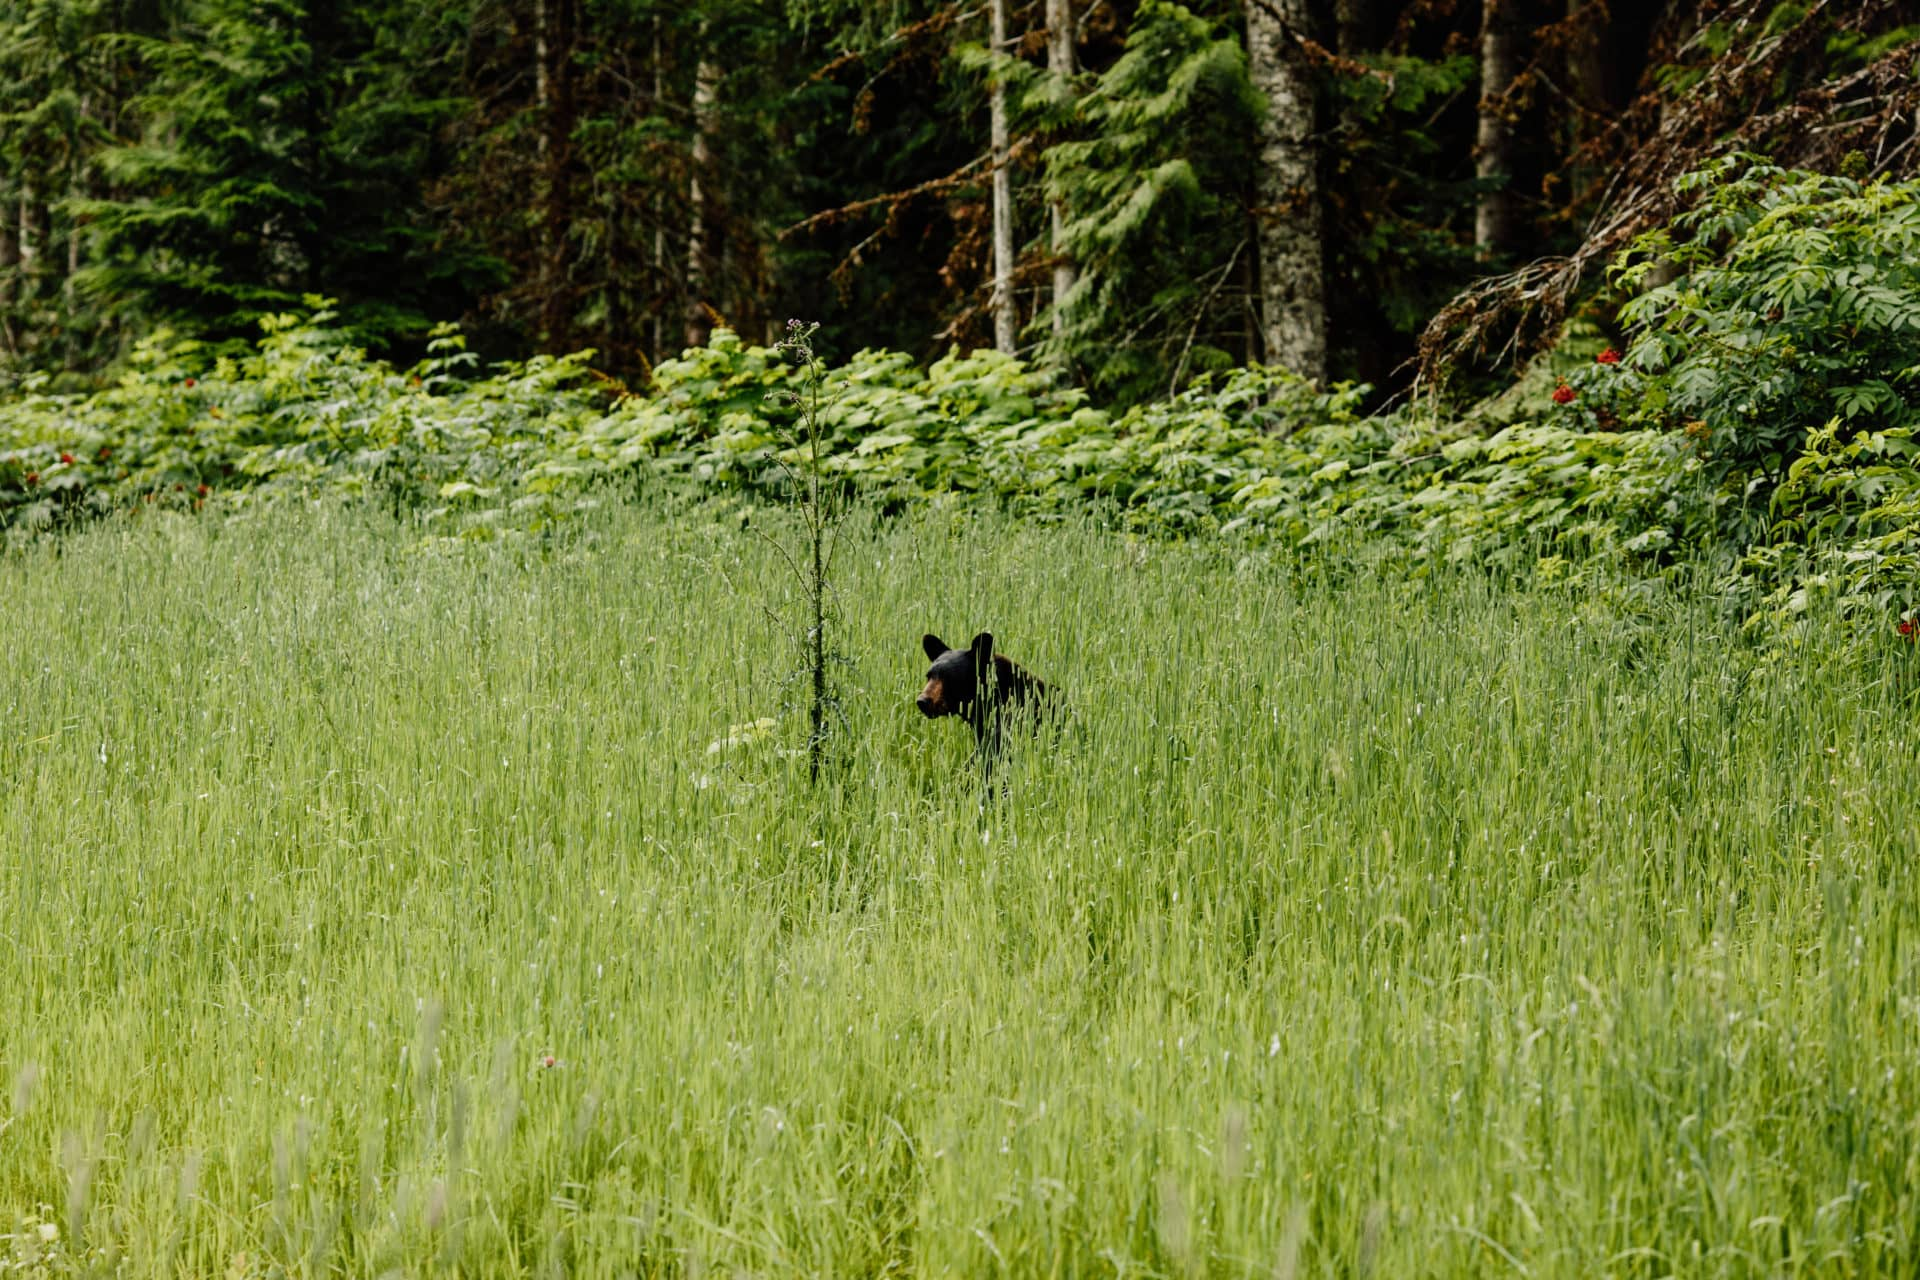 Black bear in the inland temperate rainforest